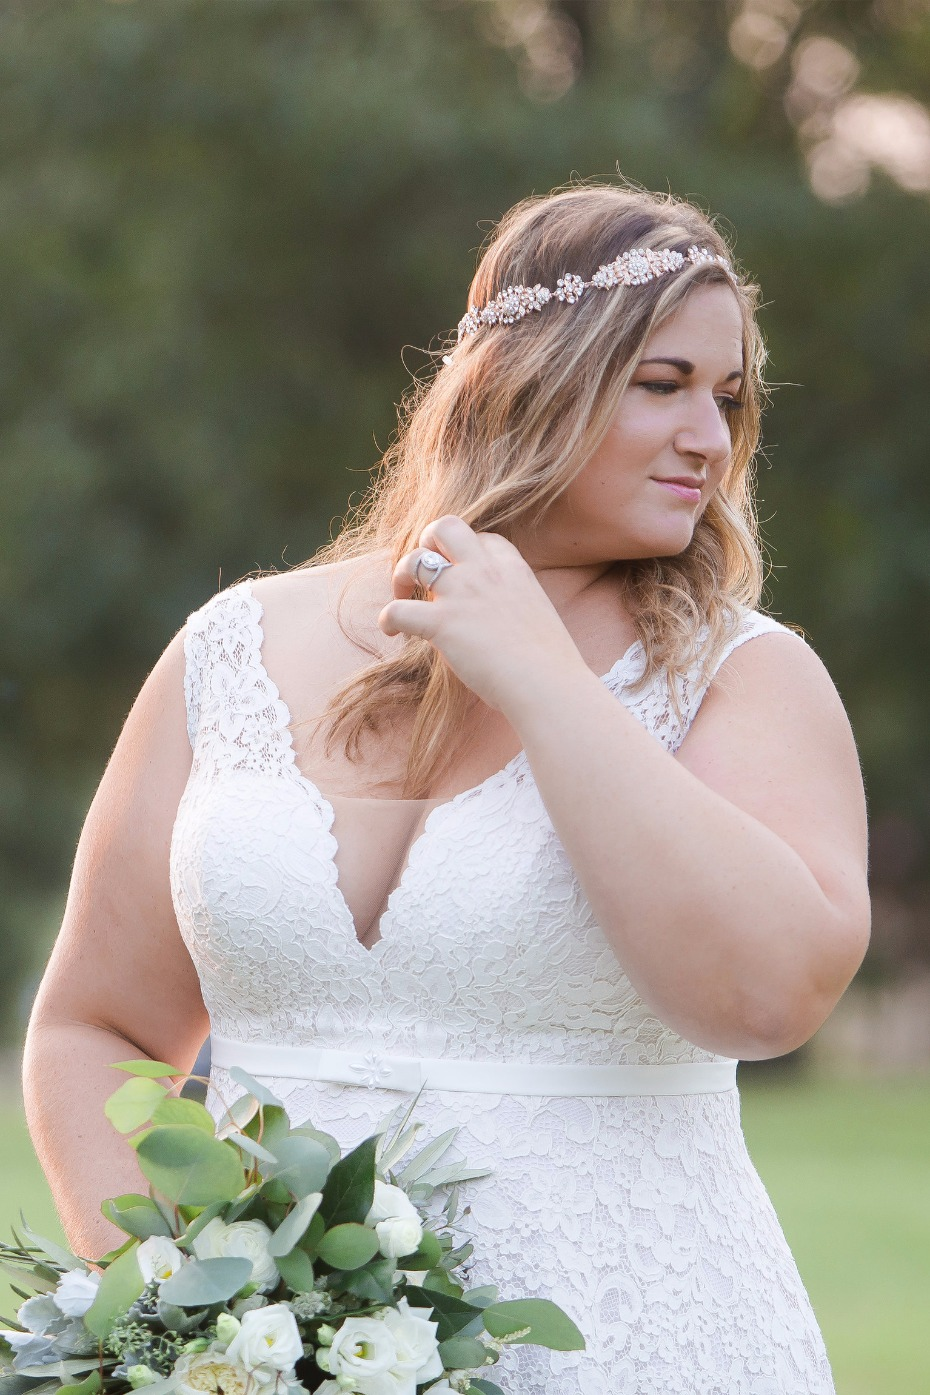 curvy brides we have gowns you are going to LOVE from All My Heart Bridal